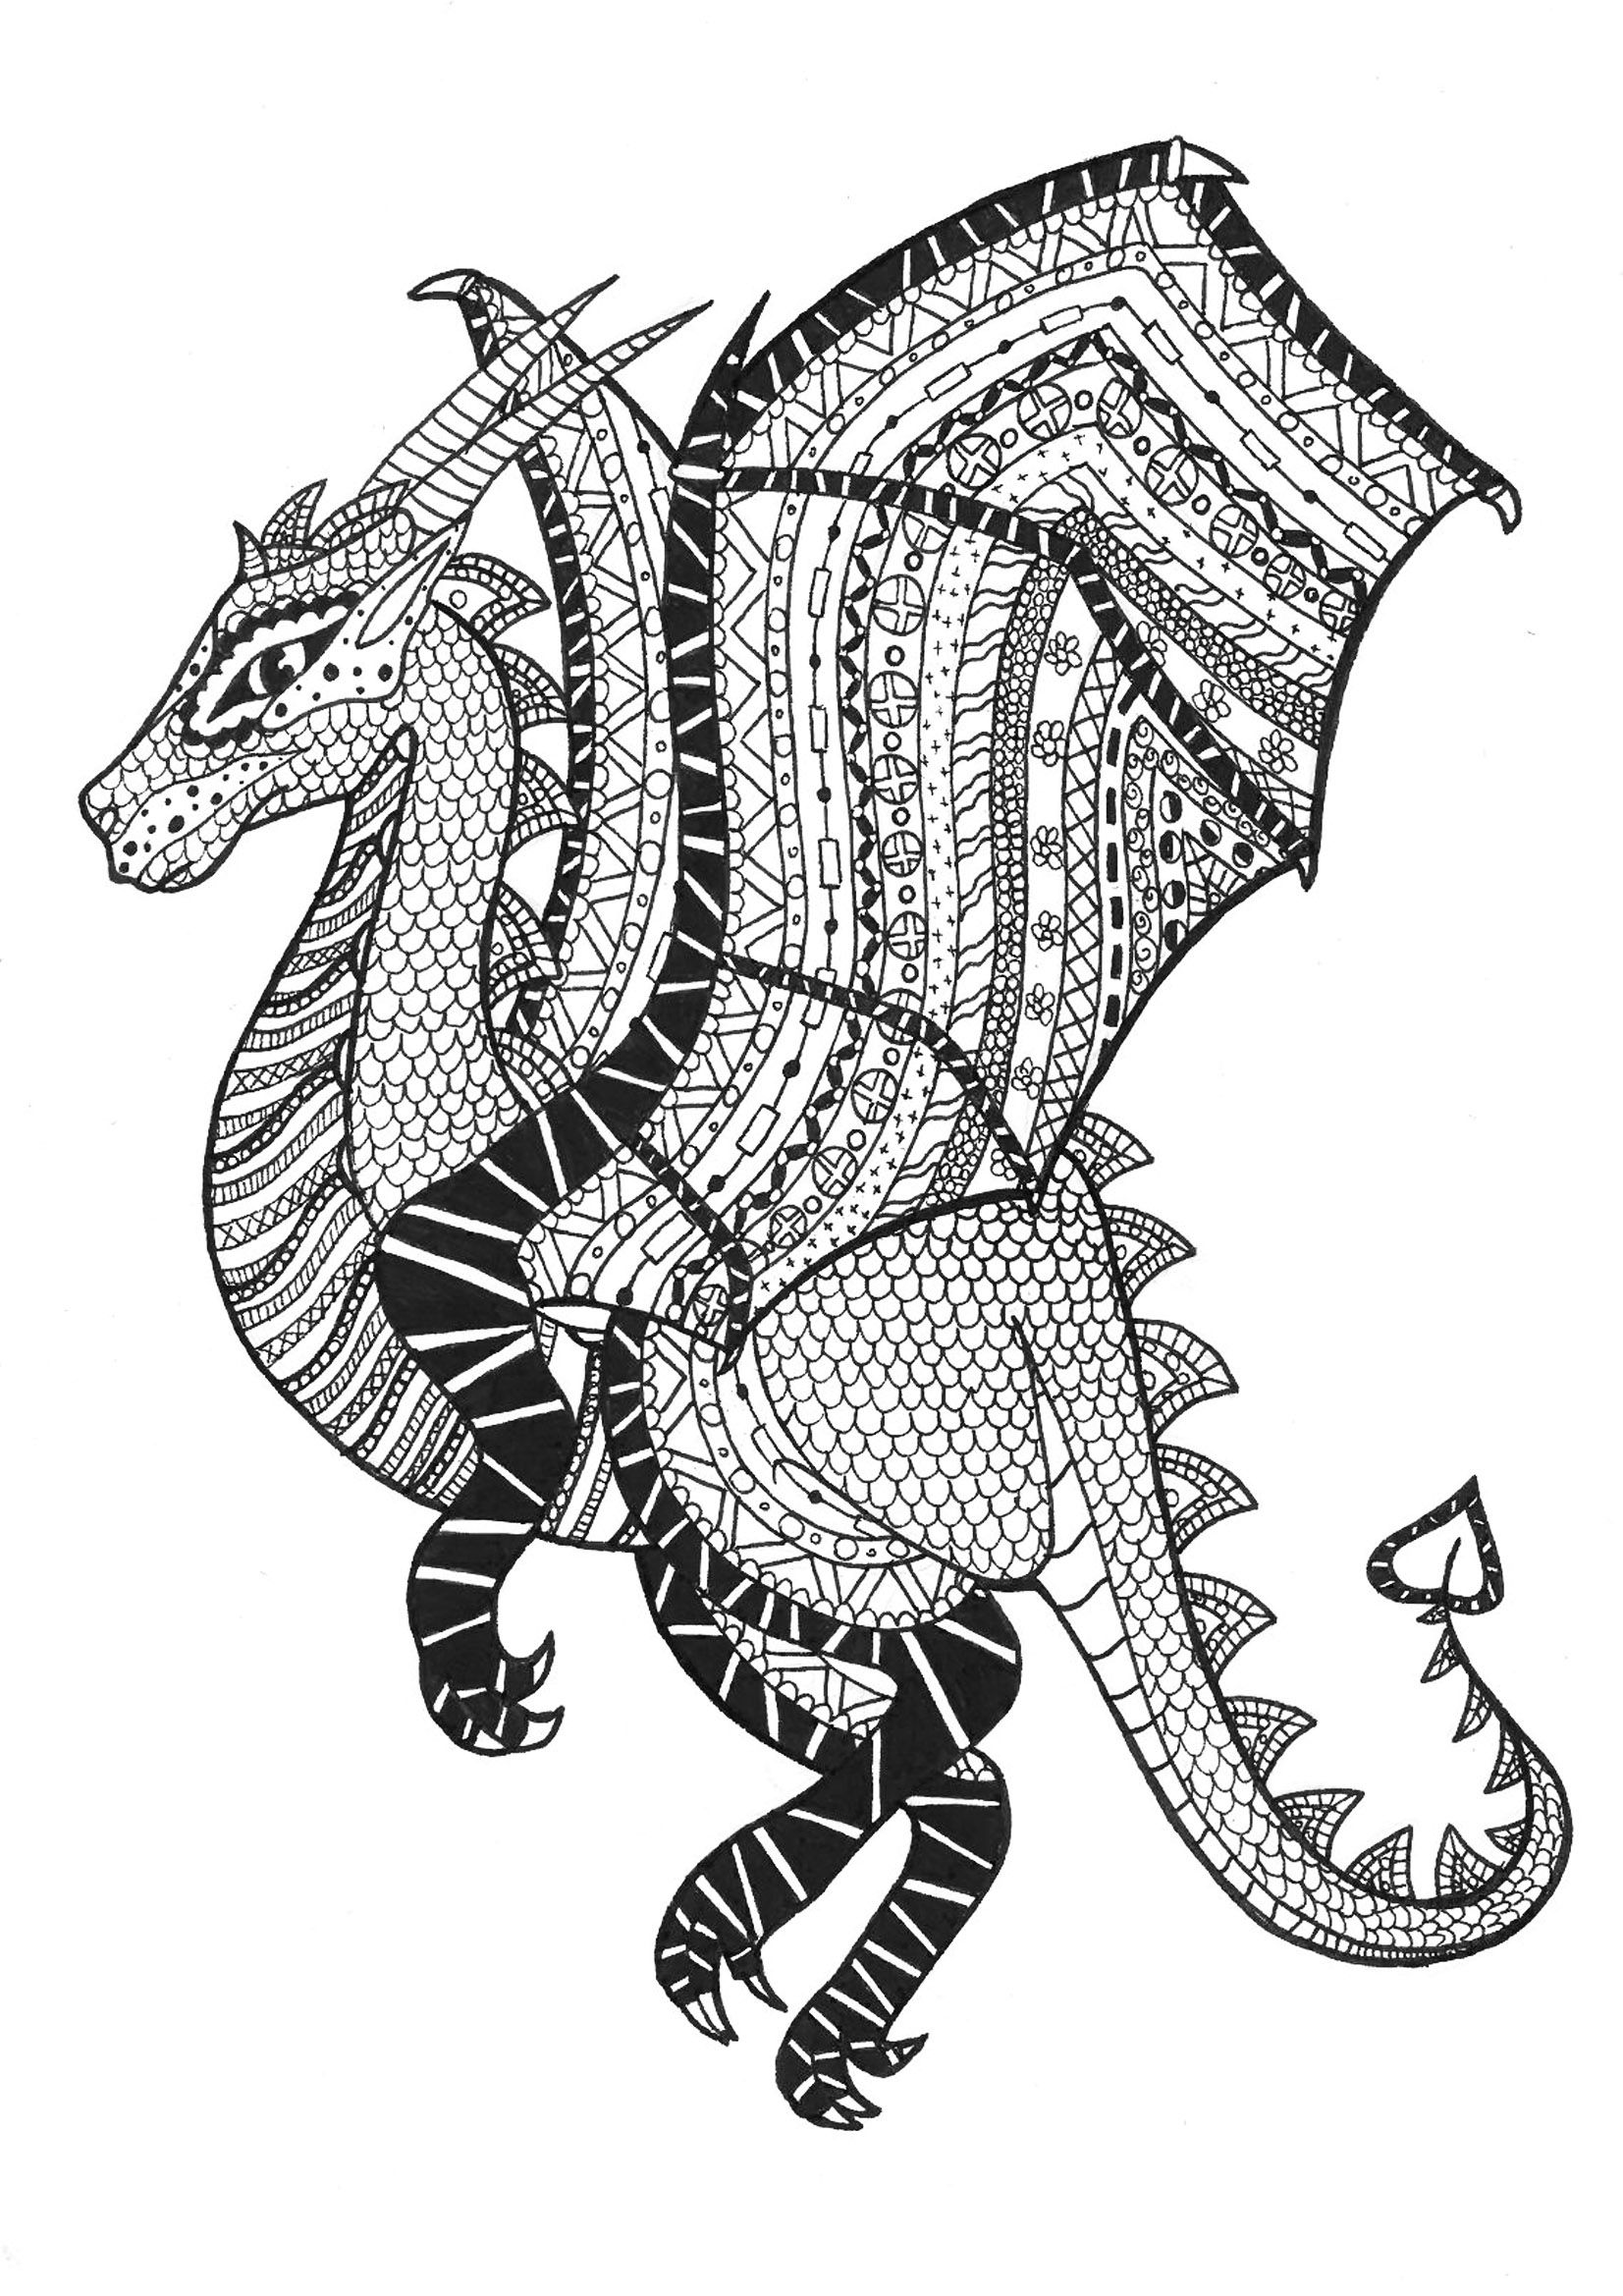 Ausmalbilder Für Erwachsene Drachen : Here Is An Amazing And Dangerous Zentangle Dragon From The Gallery